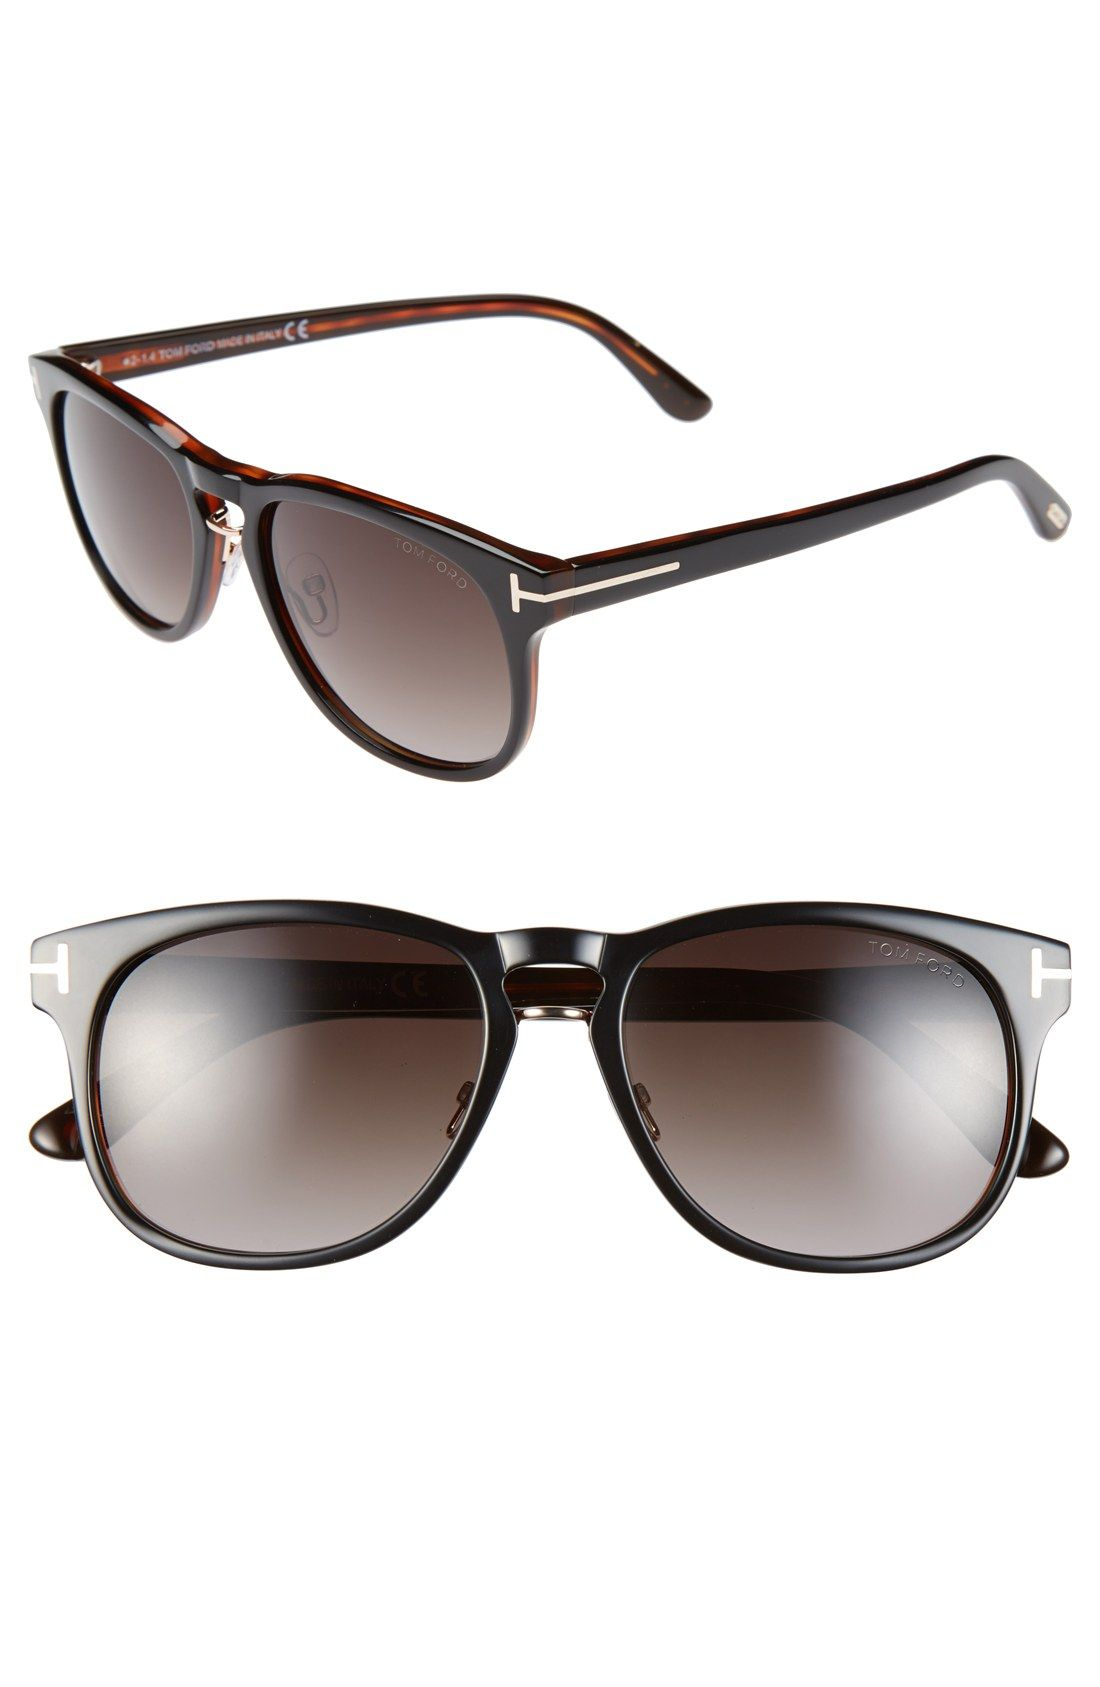 19173af2eb Tom Ford 'Franklin' 55mm Sunglasses | It's Better to Give...but ...